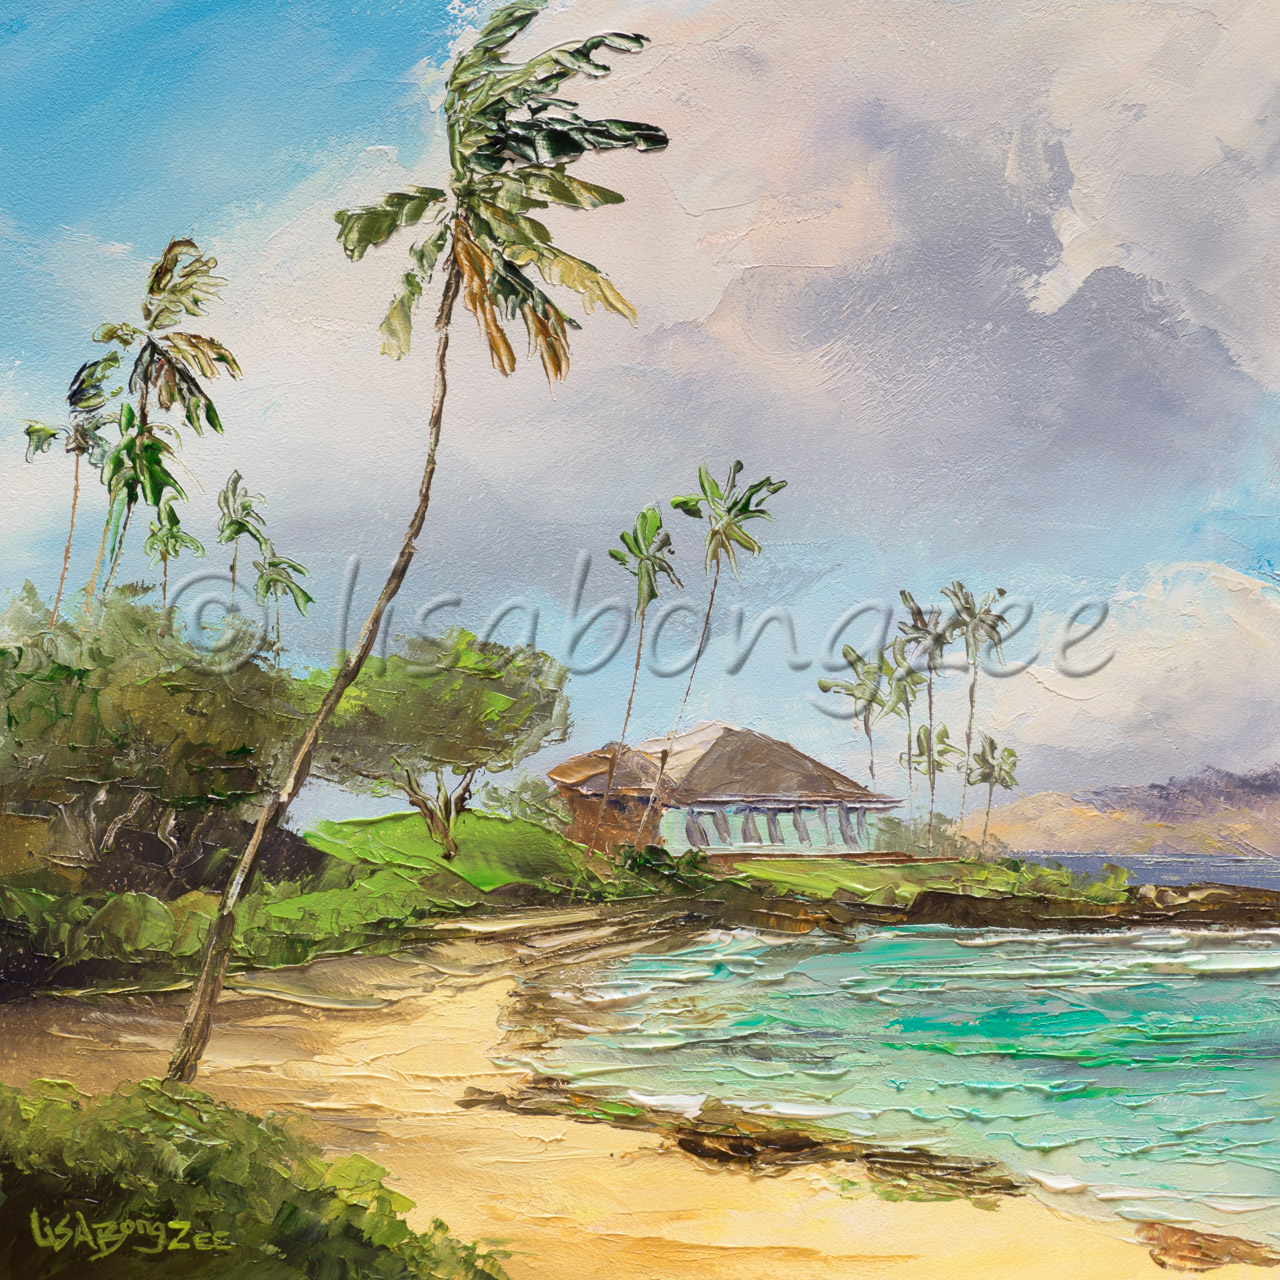 original oil of a palm tree lined beach with teal water and a house next to shore